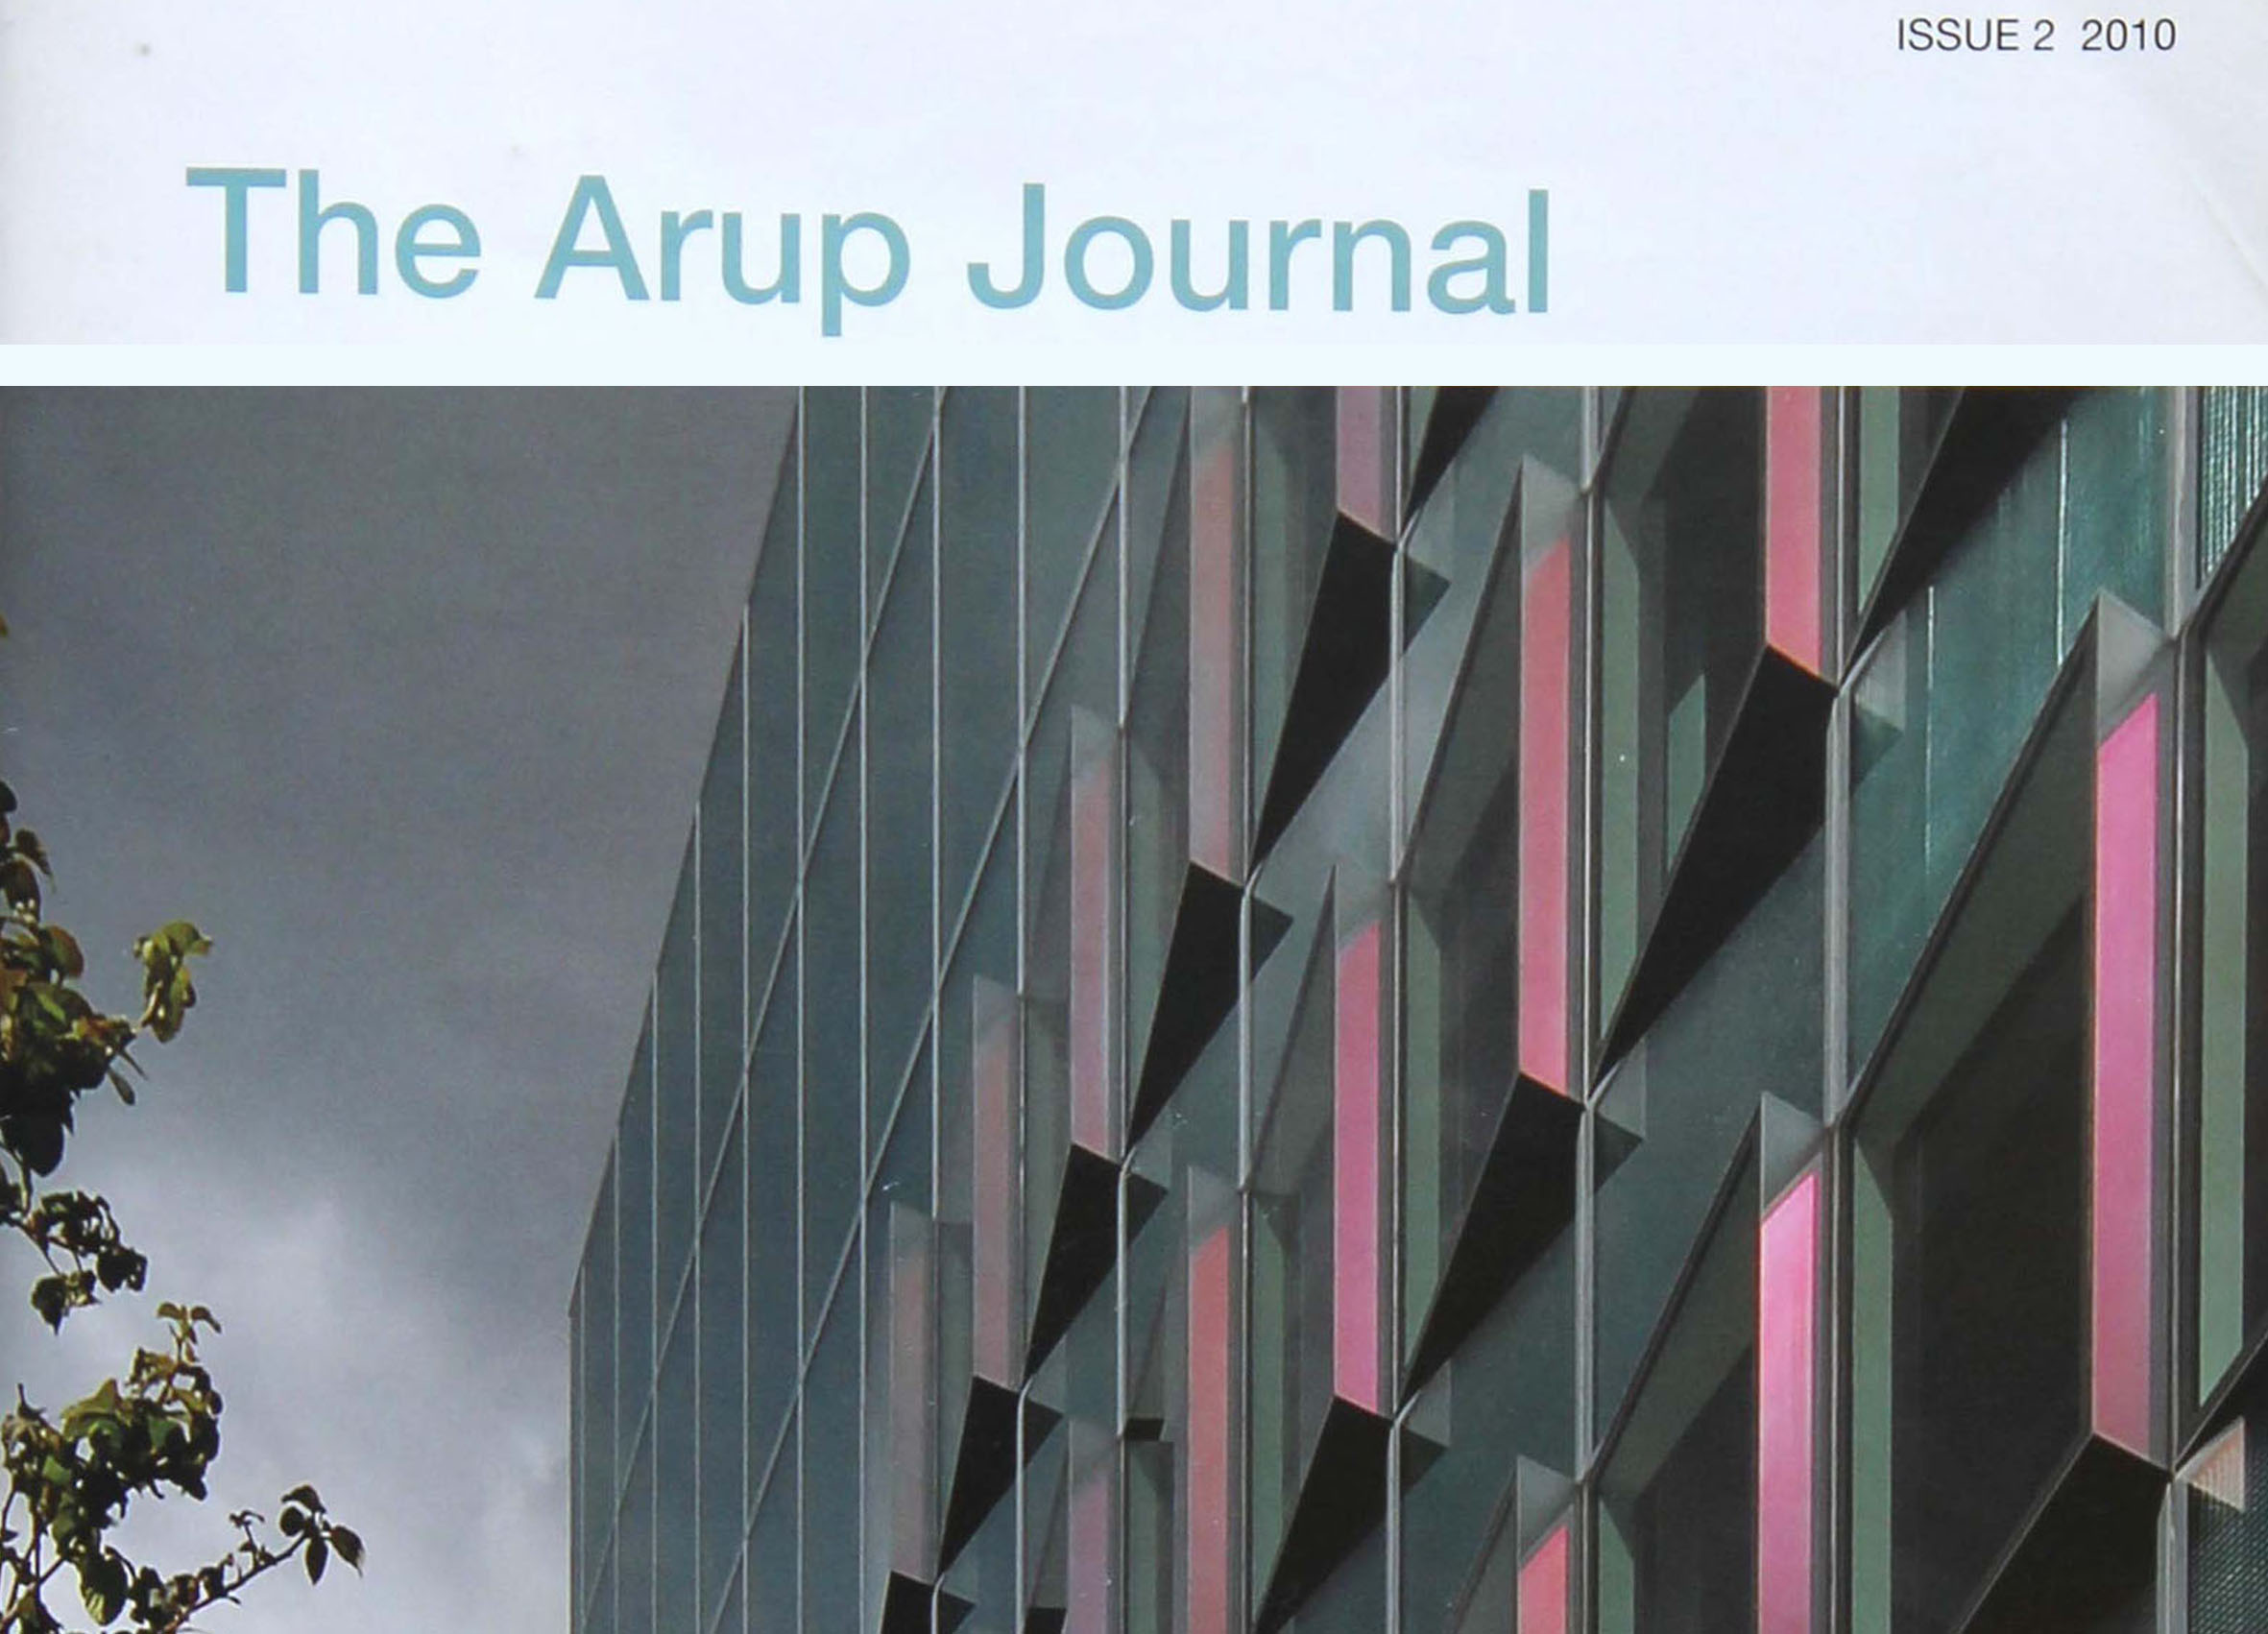 The Arup Journal 2010 - Issue 2, 2010, Danish Pavilion, Shanghai Expo